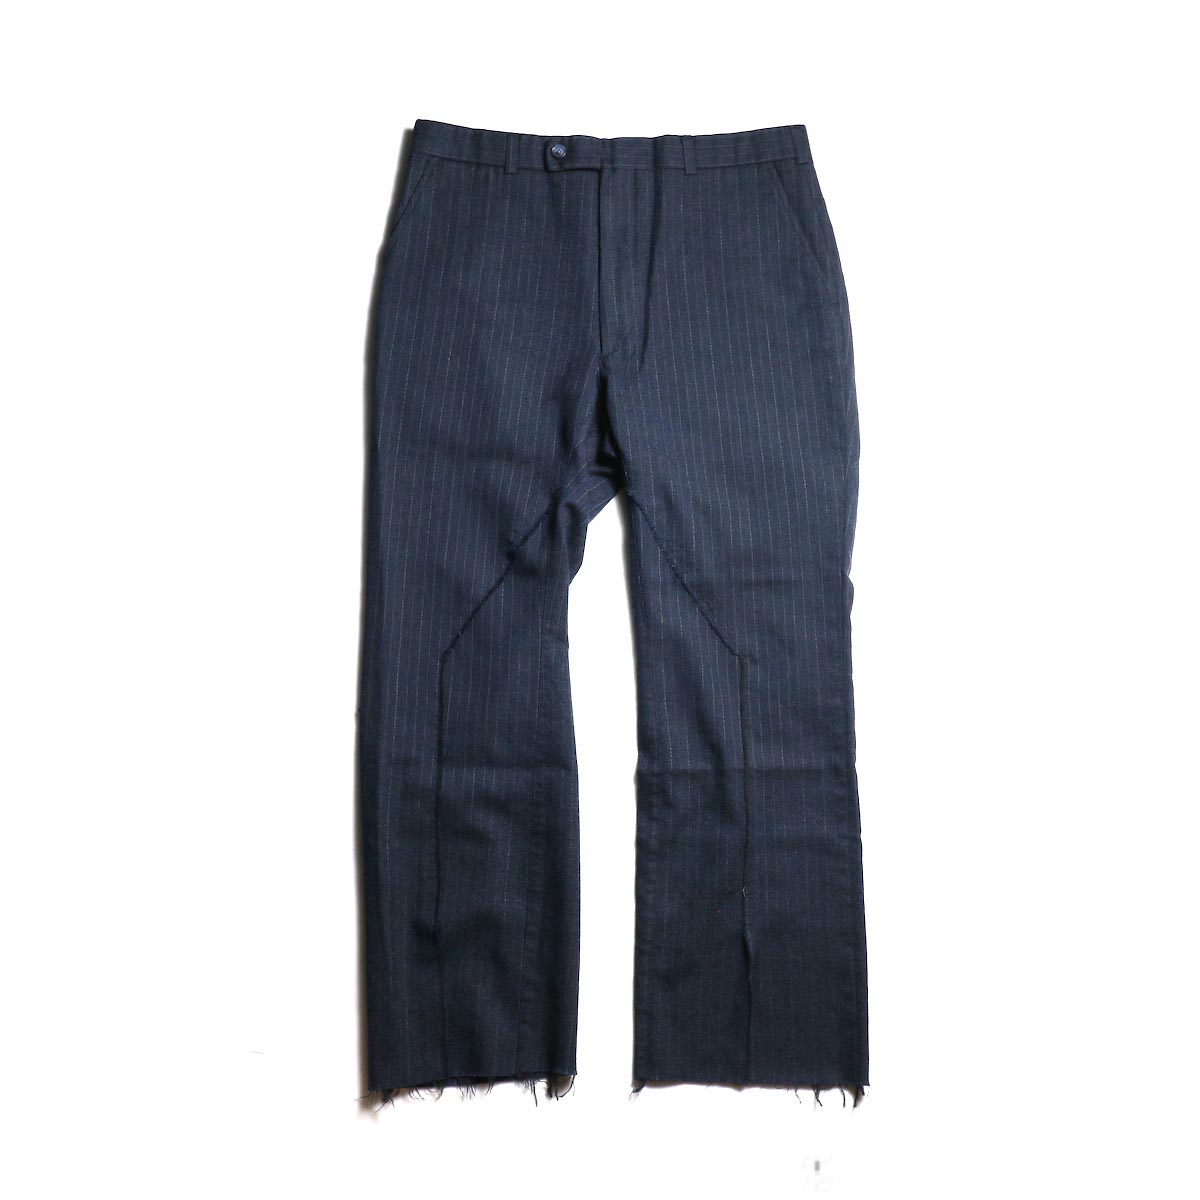 OLD PARK / SLIT PANTS SLACKS (Msize)